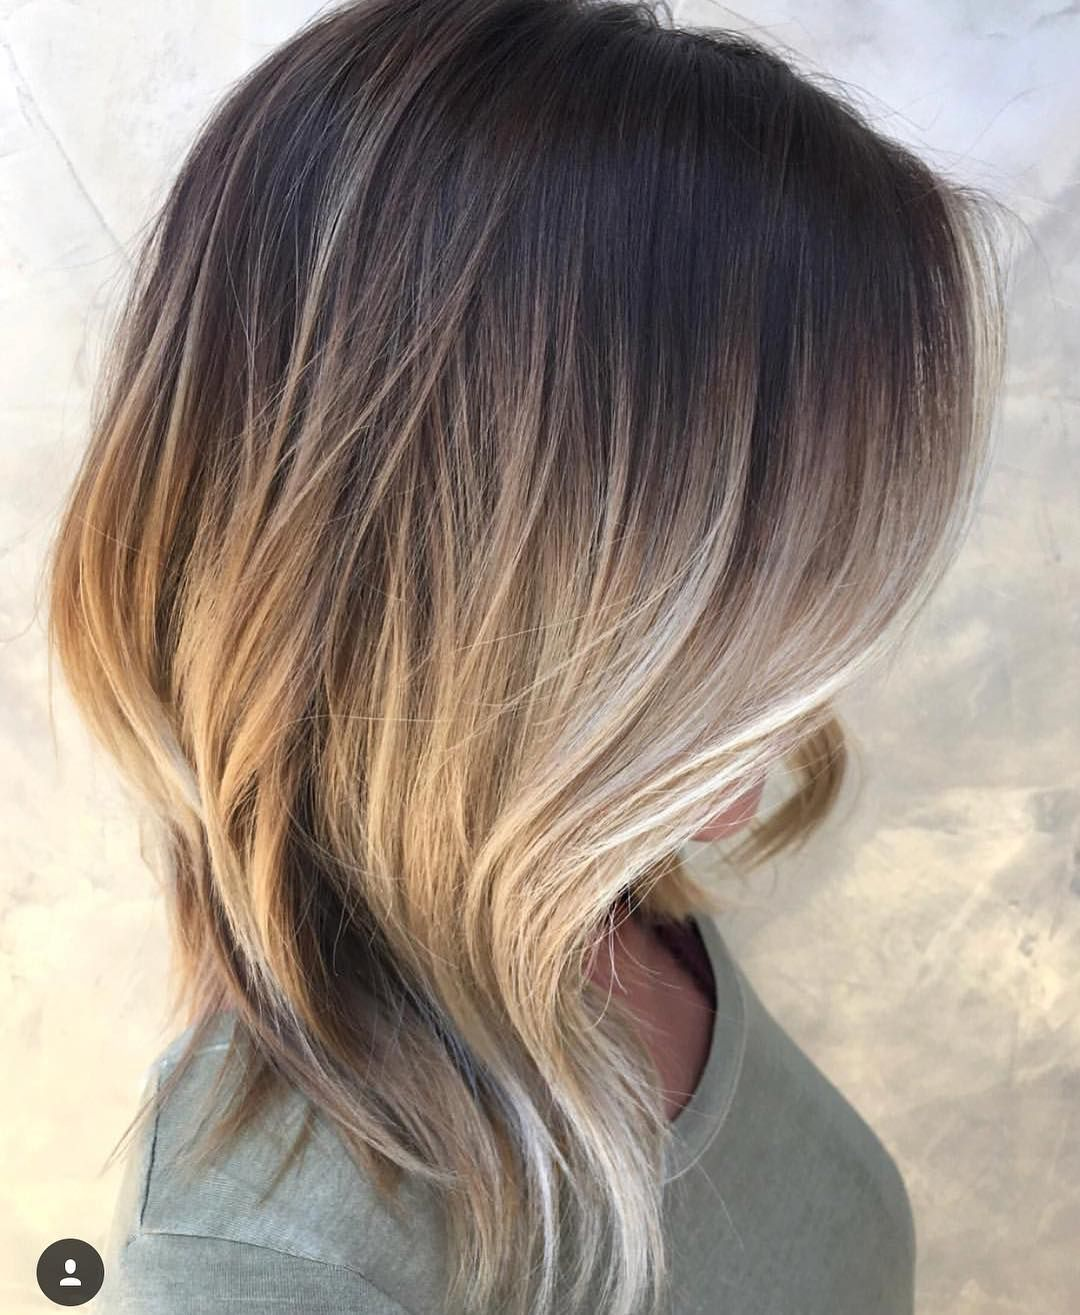 Pin On Latest Hairstyles For Women 2020